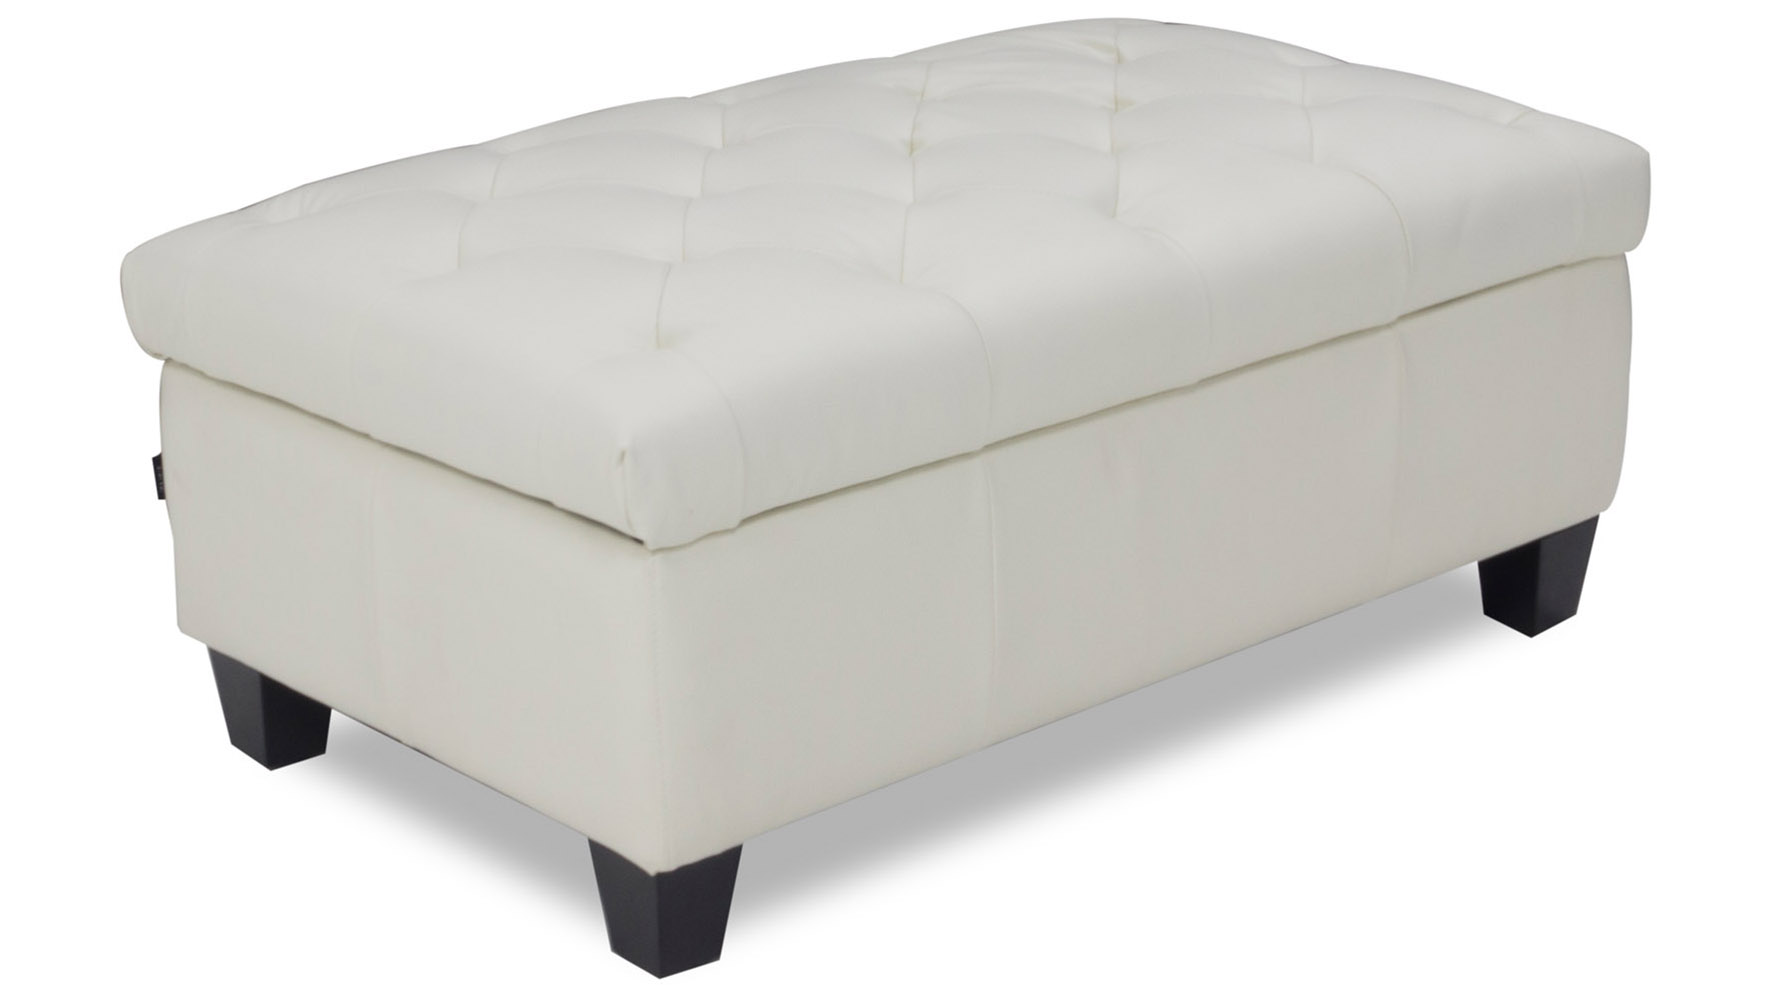 carson tufted contemporary ottoman white zuri furniture. Black Bedroom Furniture Sets. Home Design Ideas